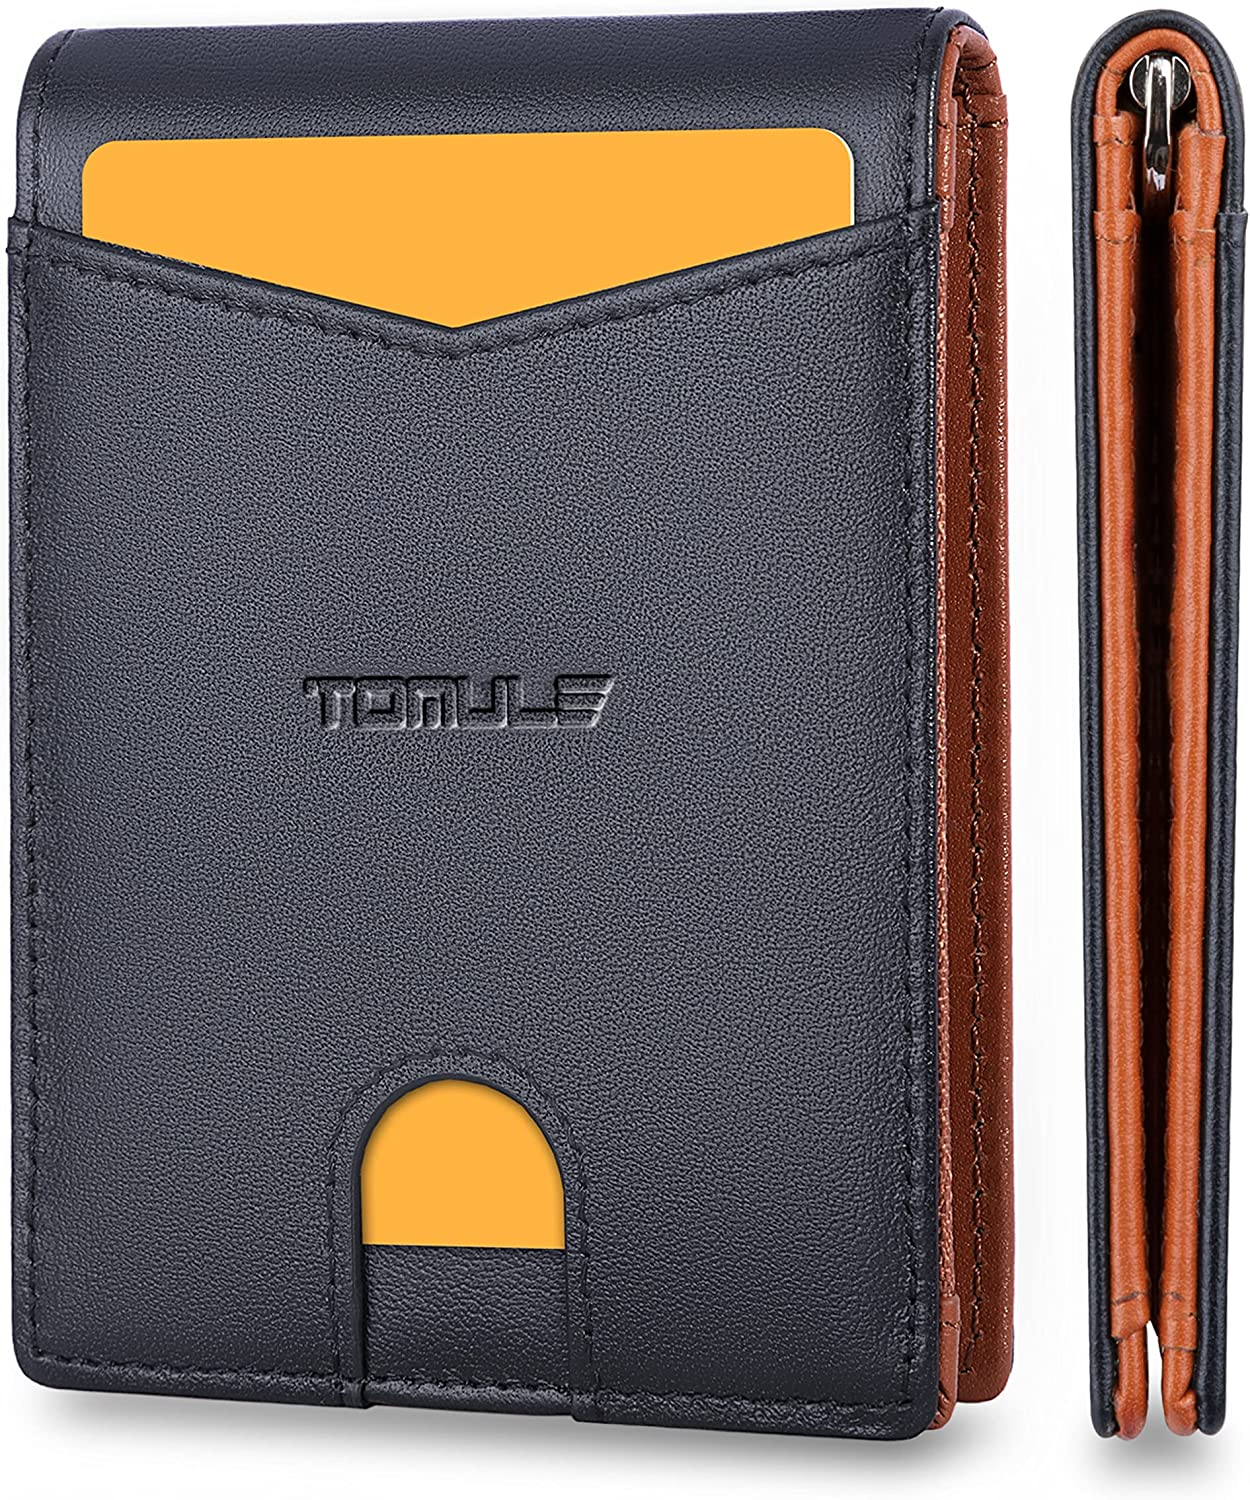 TOMULE Mens Leather Wallets Slim Minimalist Wallet Bifold Front Pocket Wallet with Money Clip Wallet RFID Blocking Card Wallet for Men Thin Small Wallet with Coin Pocket ID Window (Black&Orange)